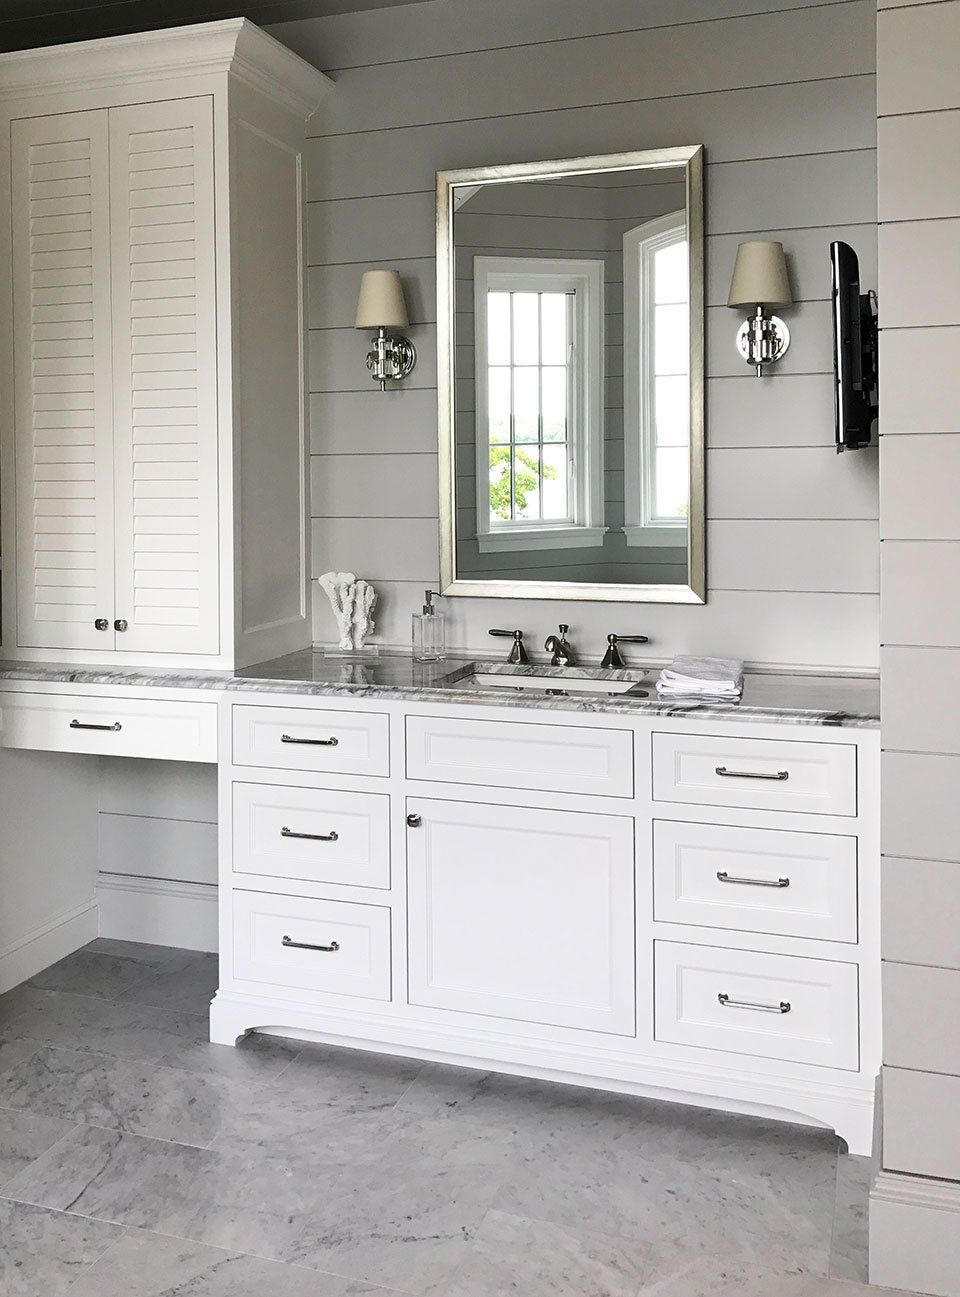 10 Creative Ways to Decorate With Shiplap | Bathroom Ideas ...